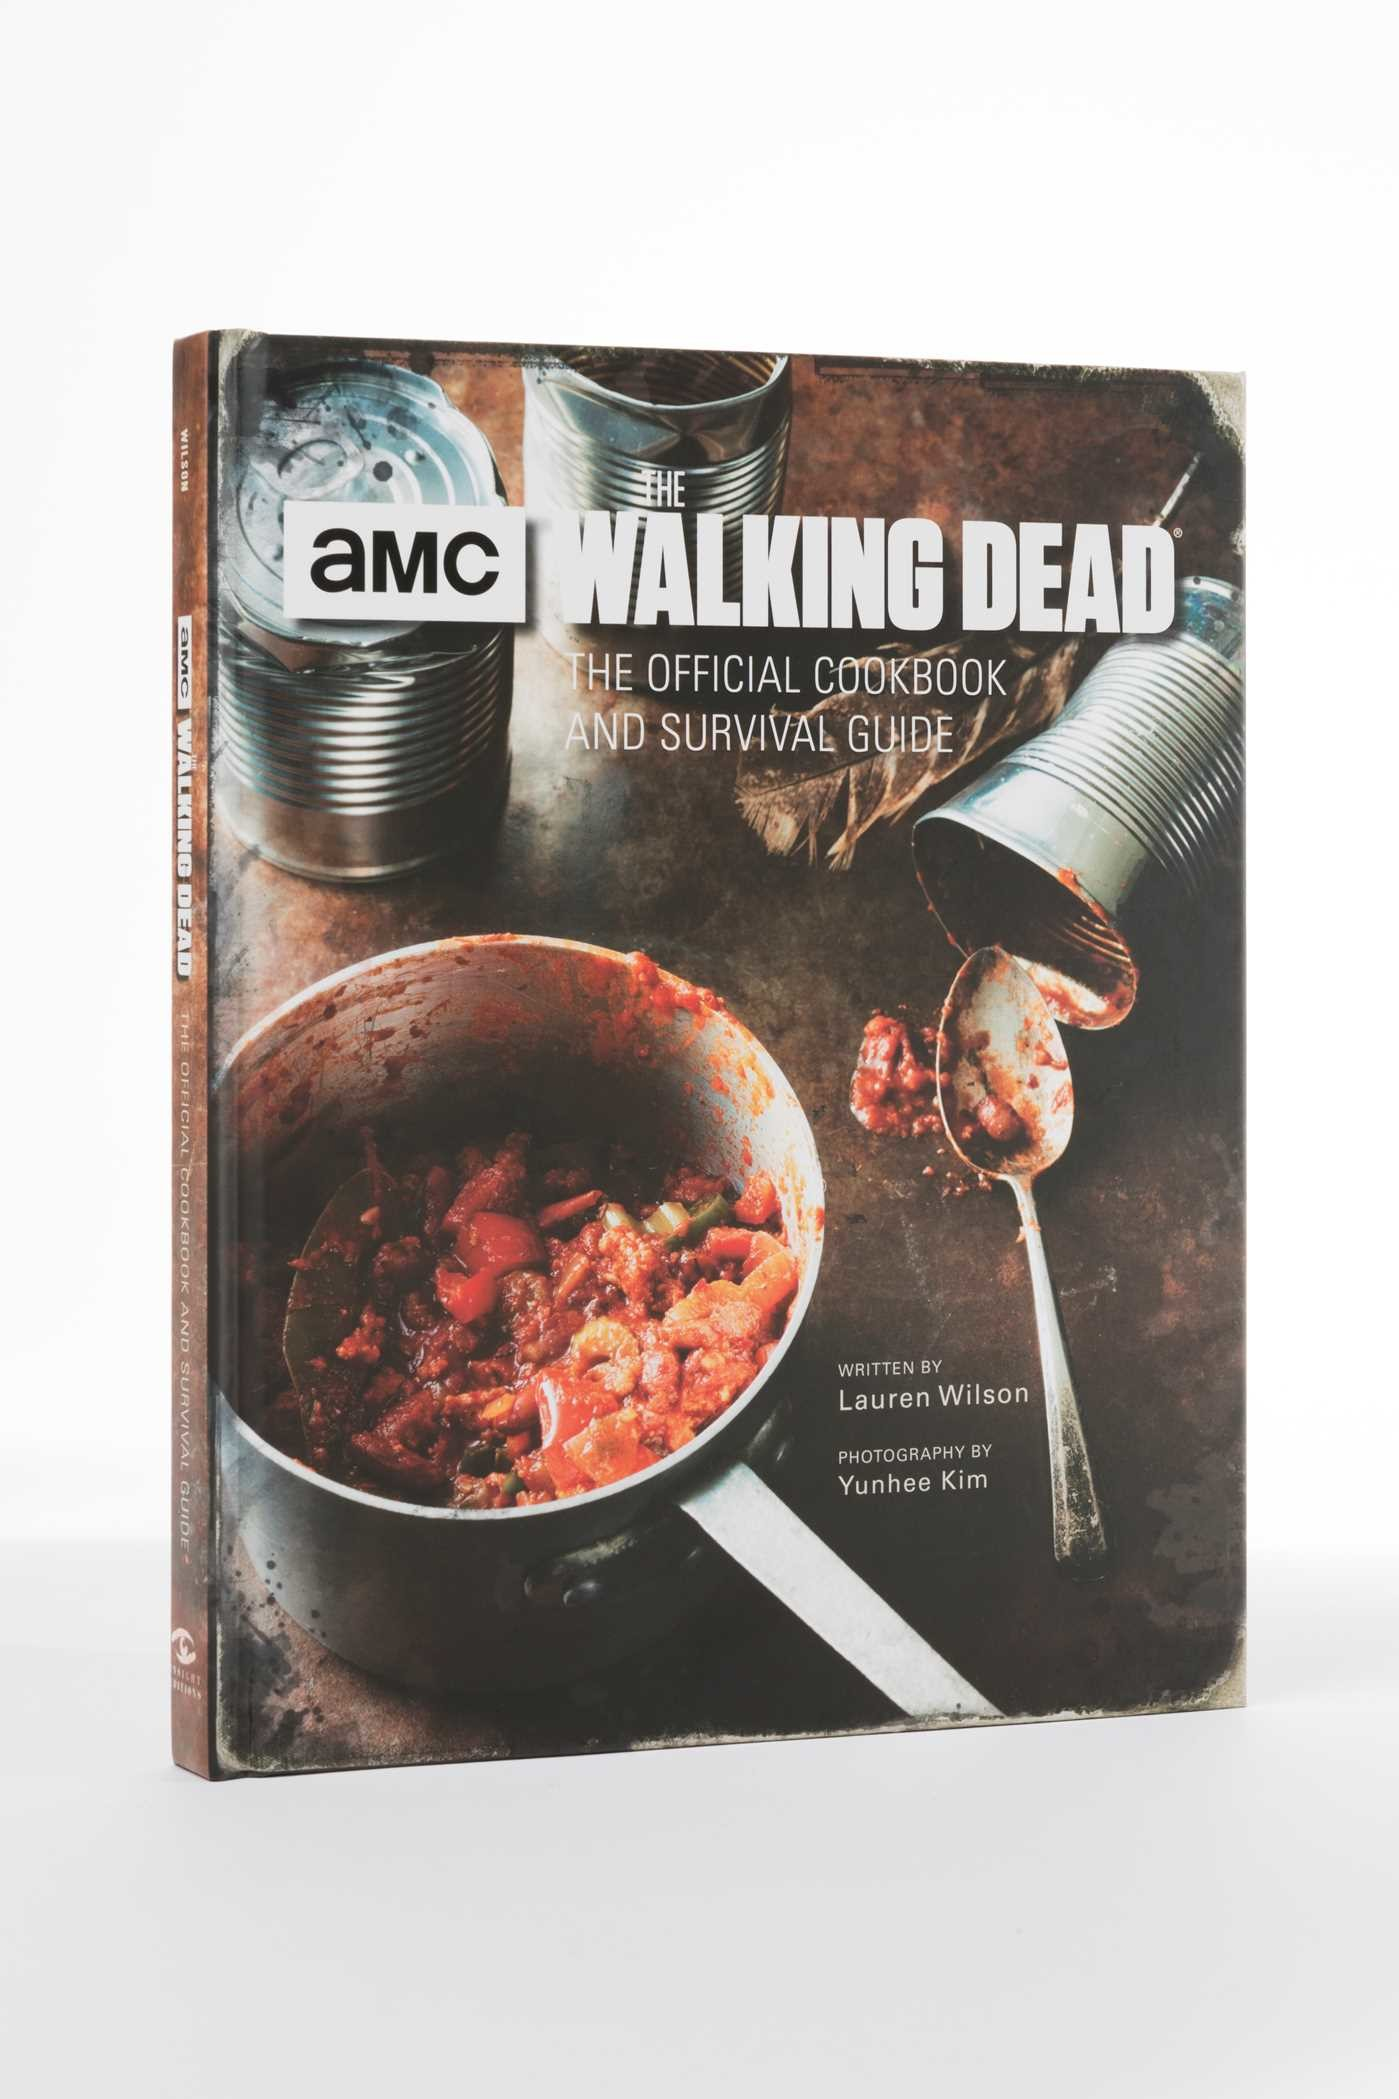 The walking dead the official cookbook and survival guide 9781683830788.in08